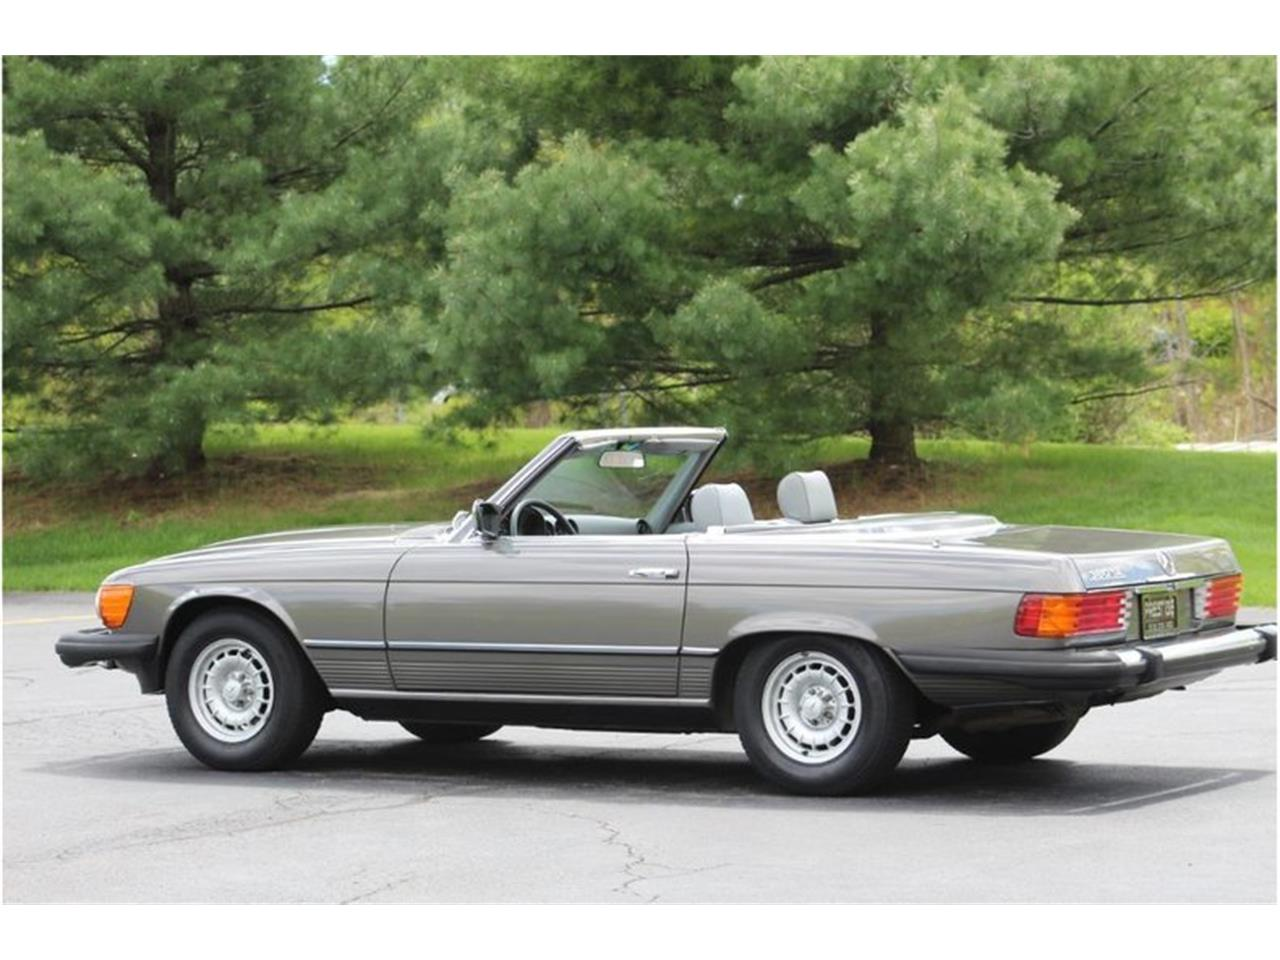 Large Picture of '83 380SL located in Saratoga Springs New York Auction Vehicle Offered by Saratoga Auto Auction - R1AI